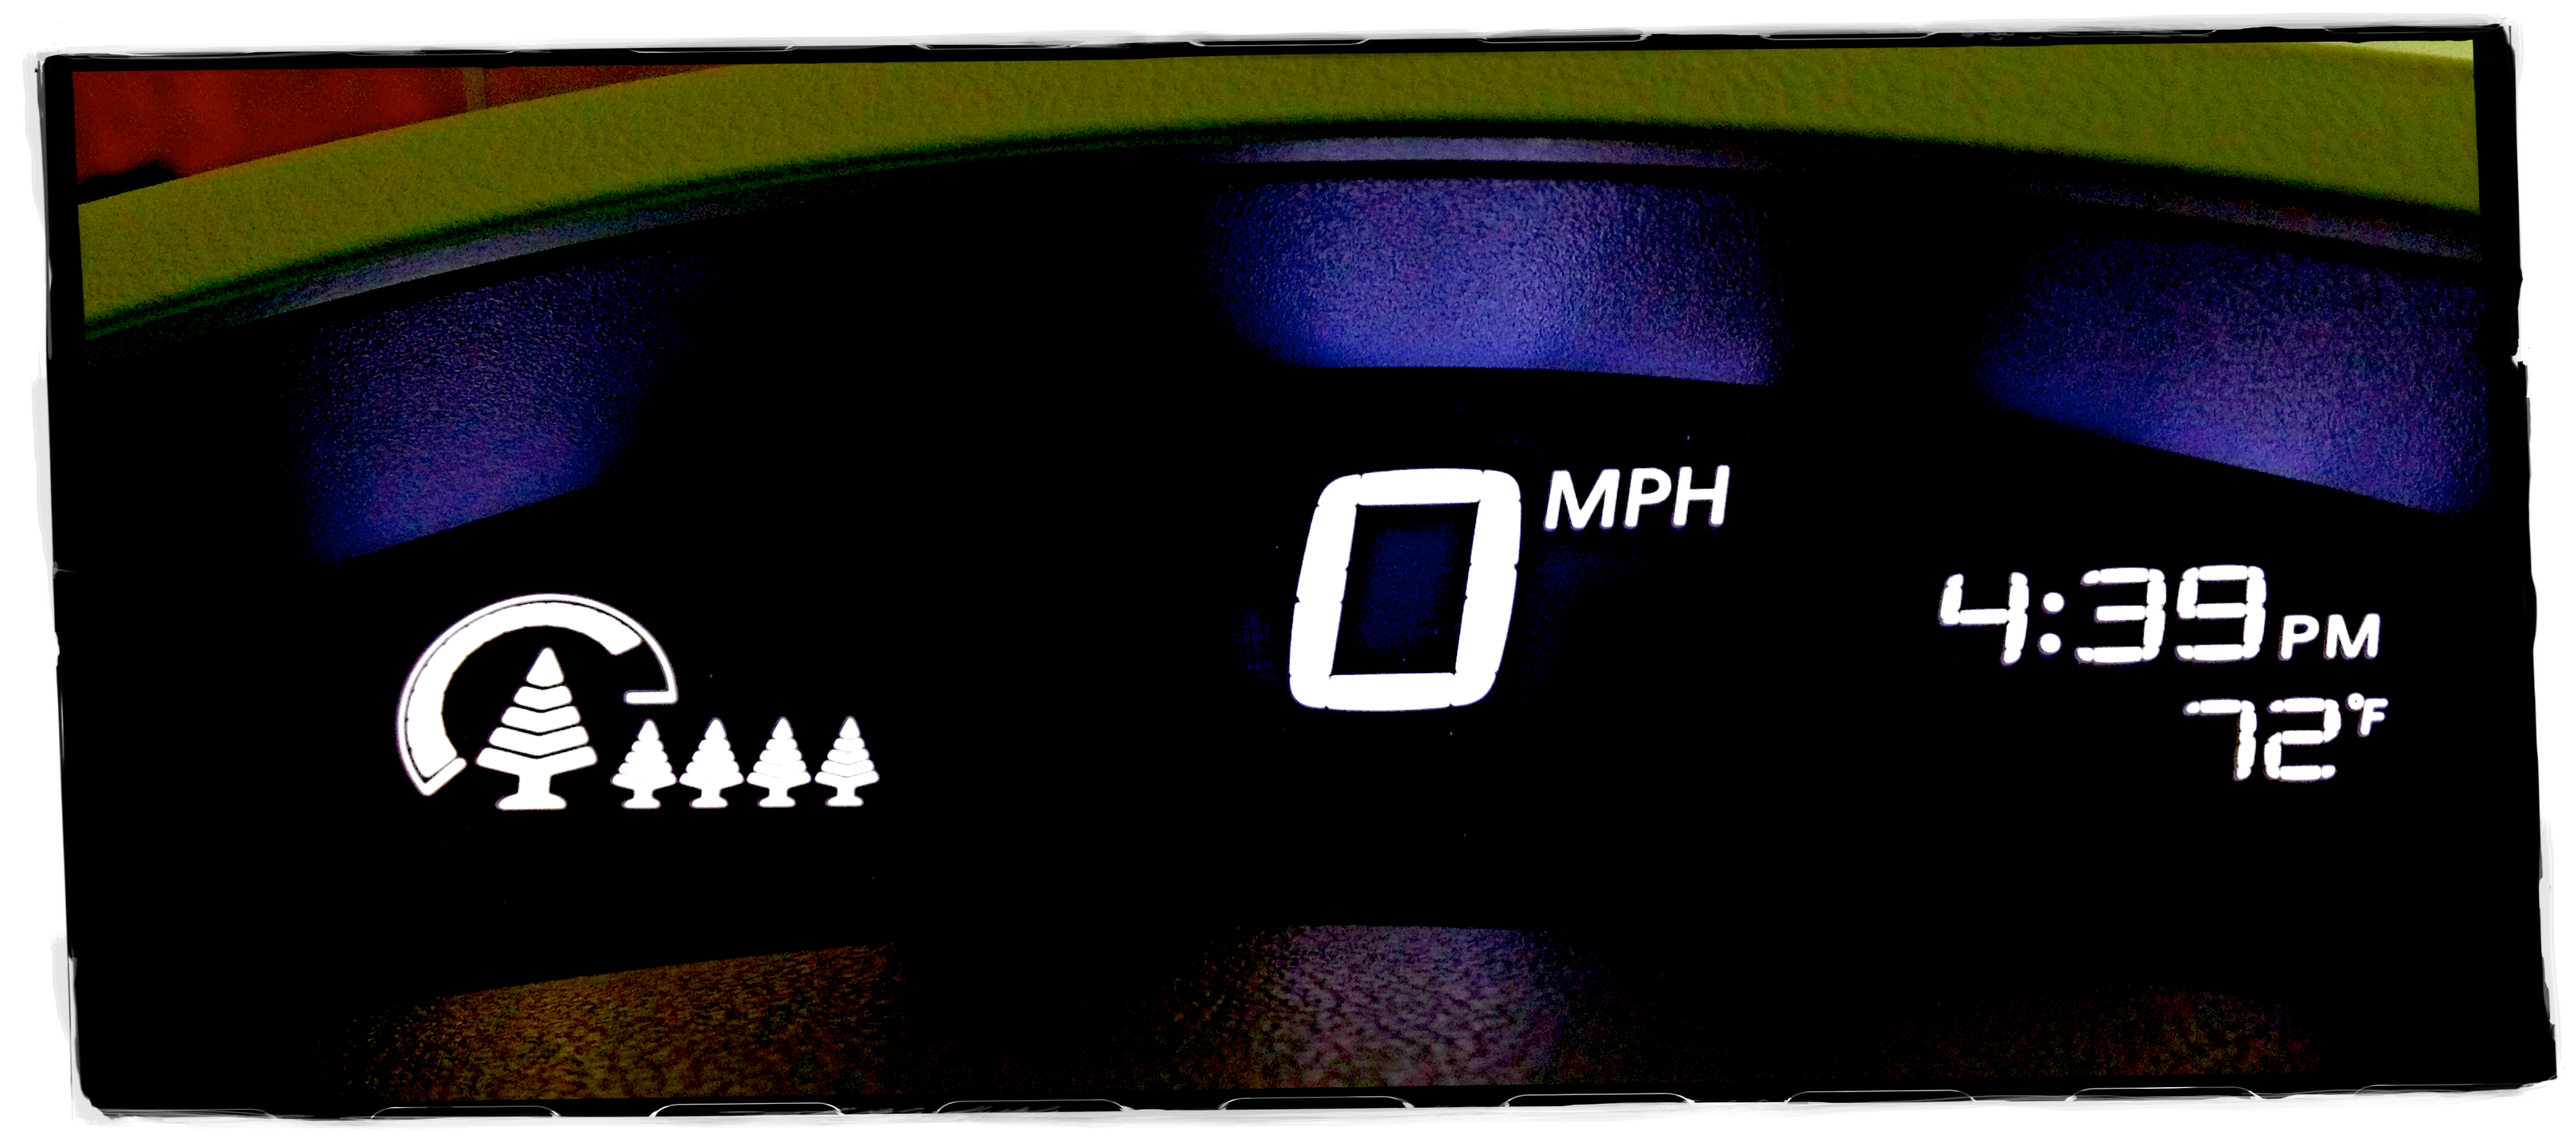 Nissan Leaf's Eco-indicator